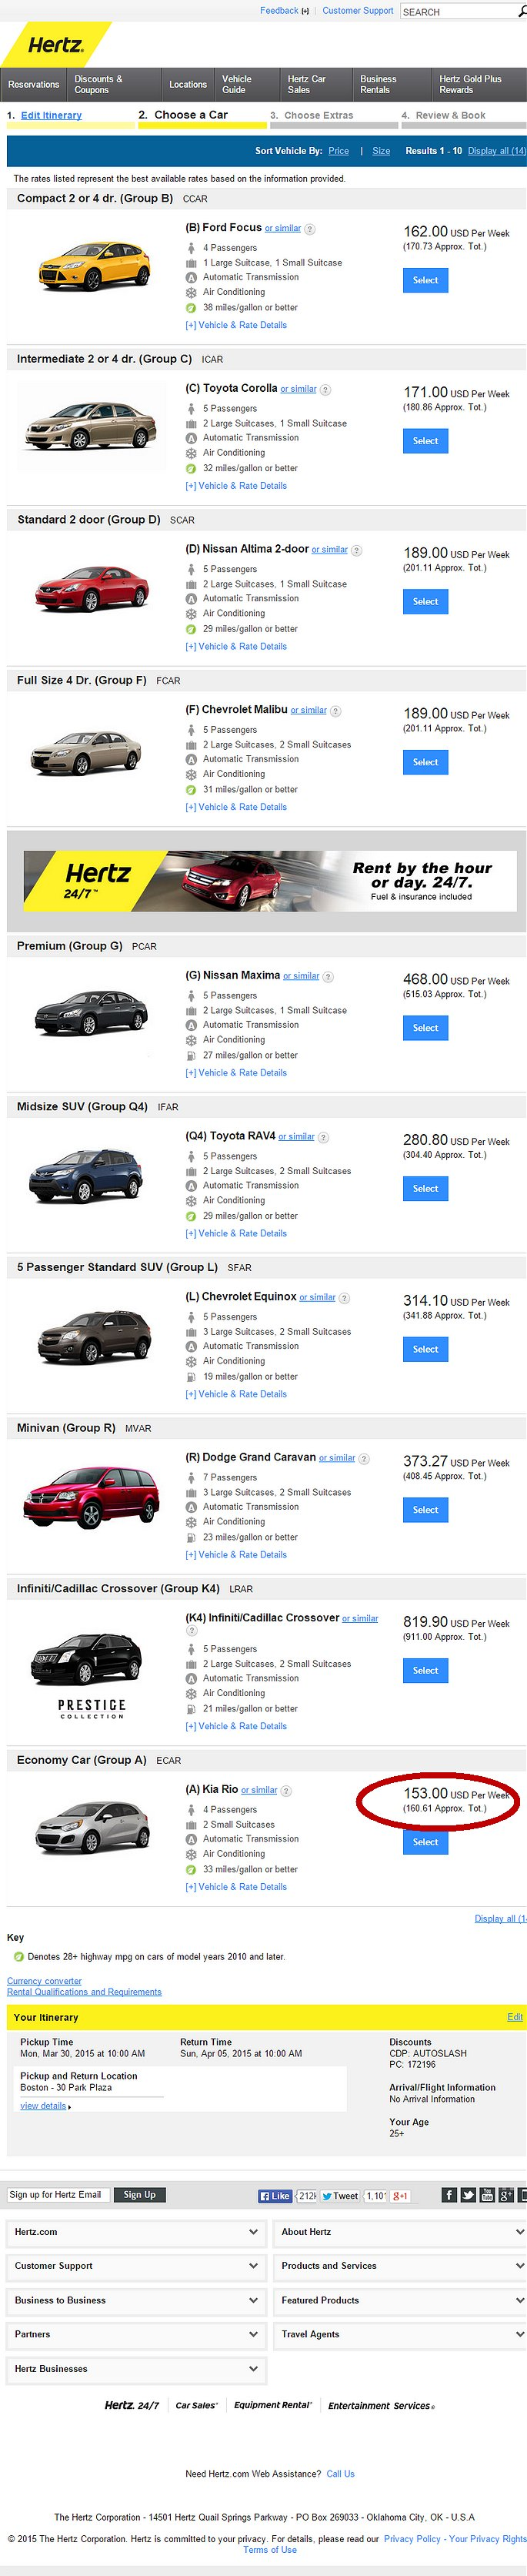 Hertz Car Rental Vehicle Types